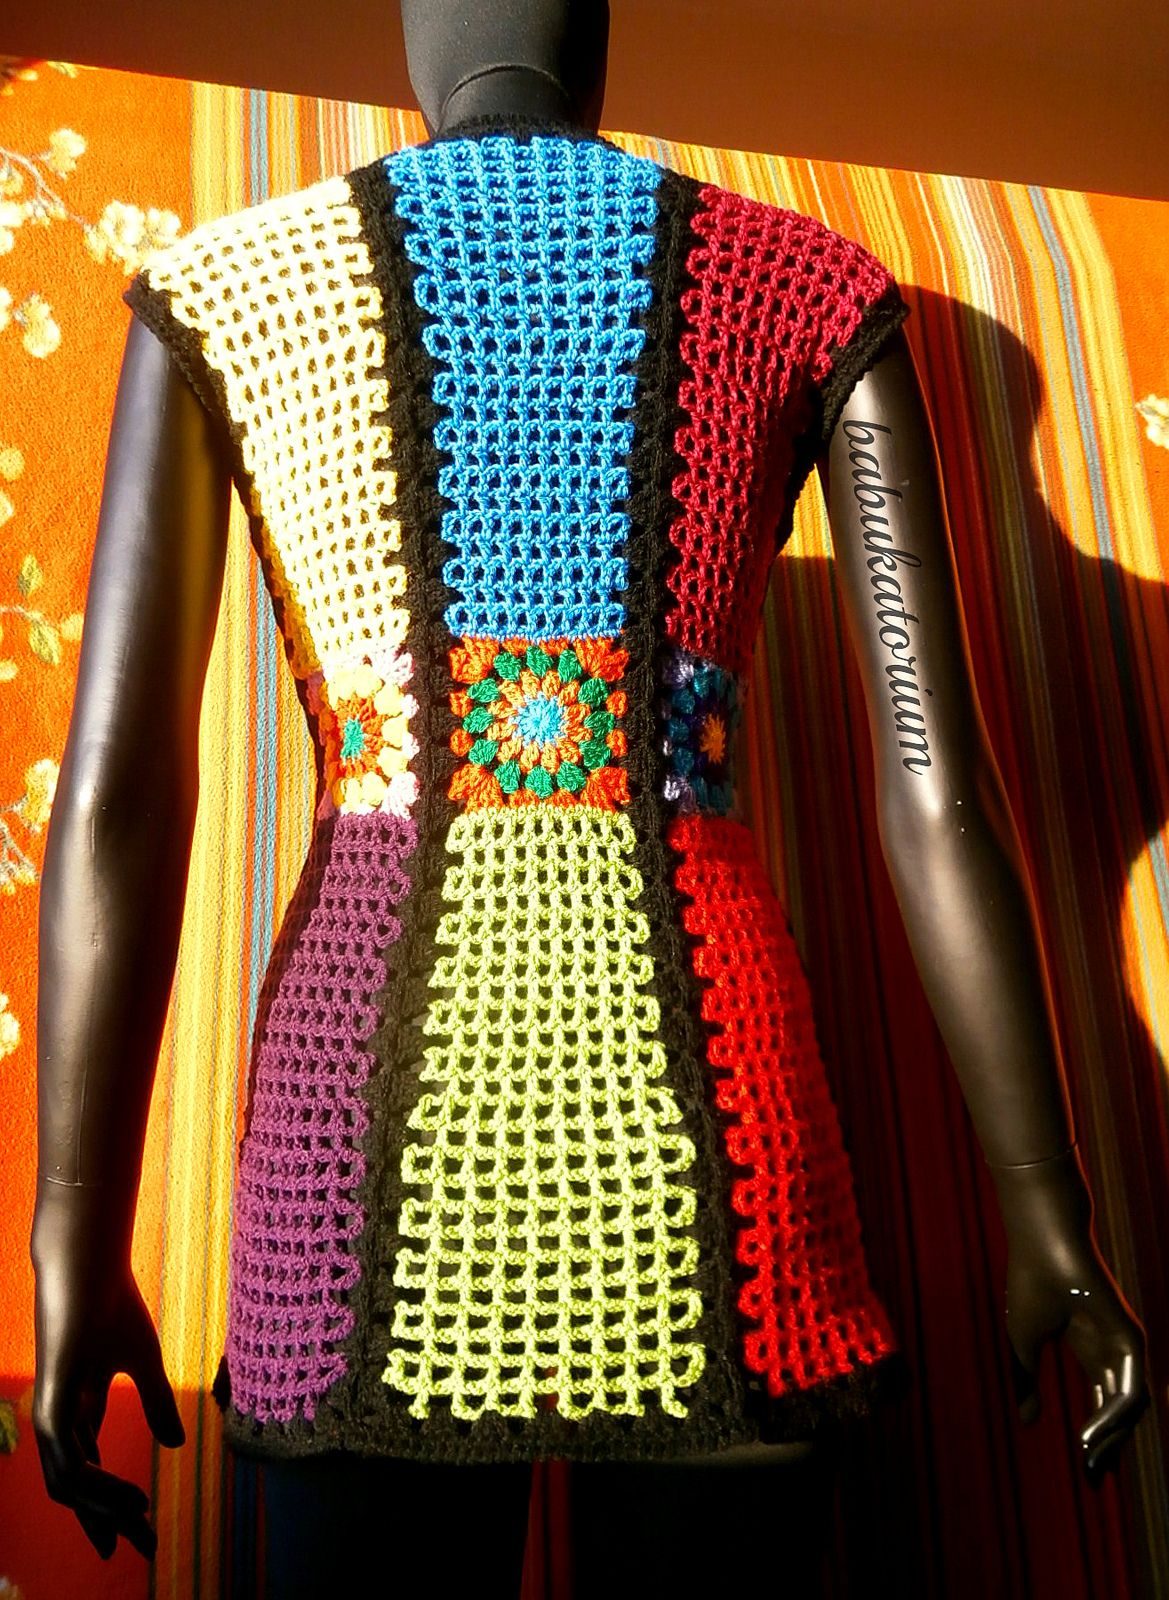 Granny Square Vest In Vintage Style With Self Shaping Design